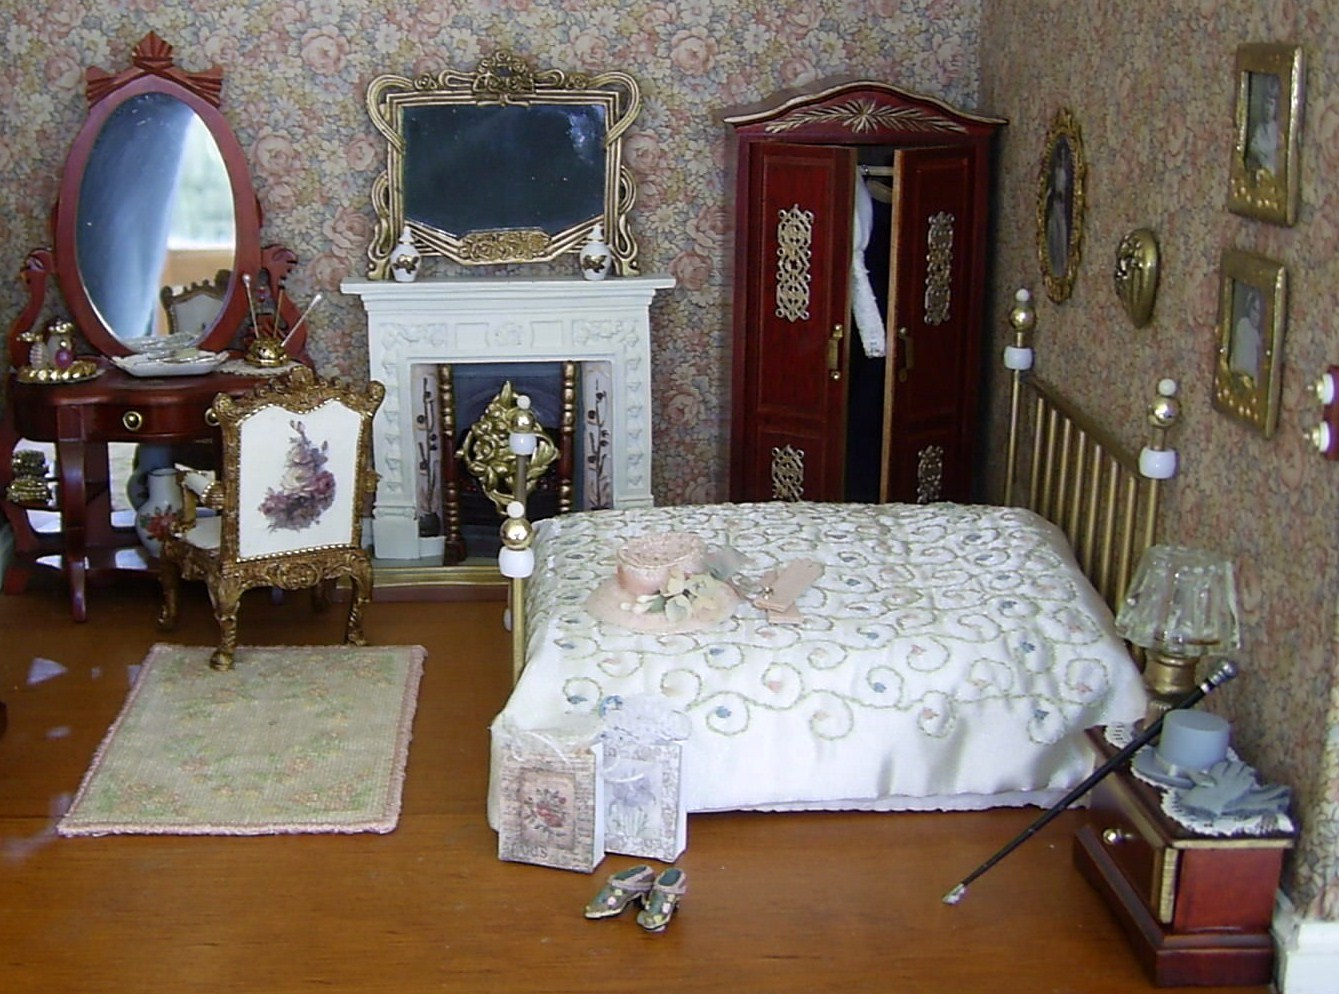 edwardian bedrooms | www.redglobalmx.org